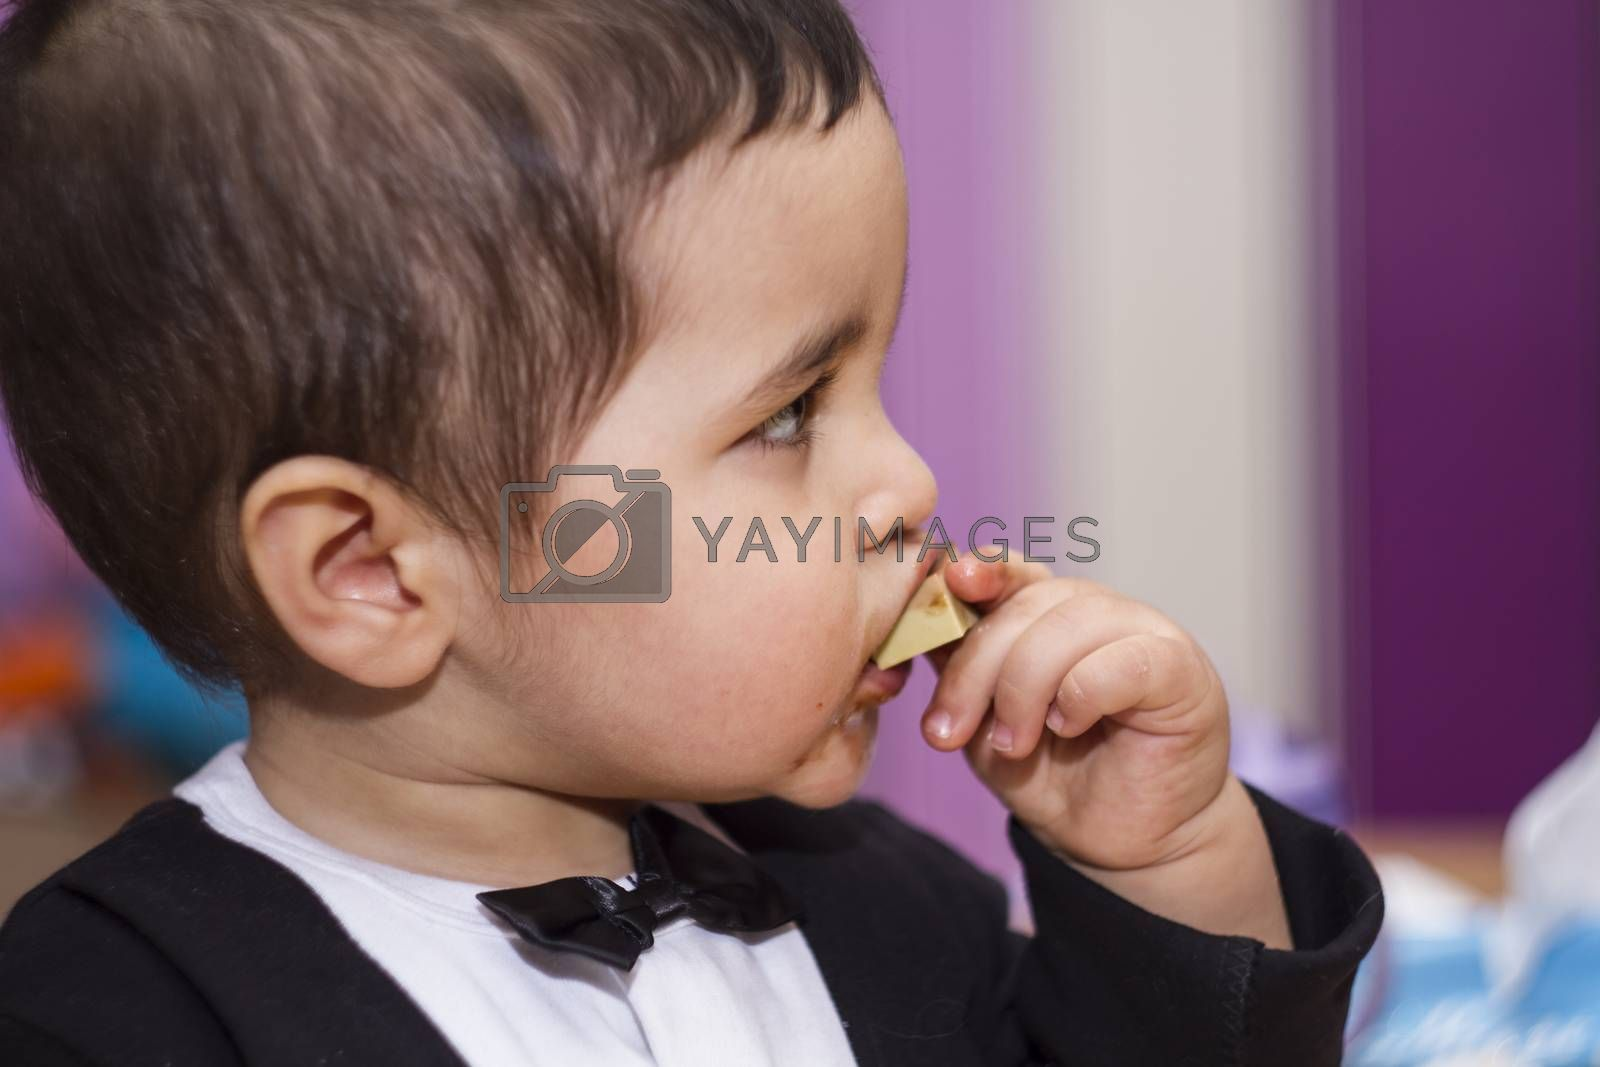 Adorable happy baby eating chocolate, wearing suit and bow tie by FernandoCortes